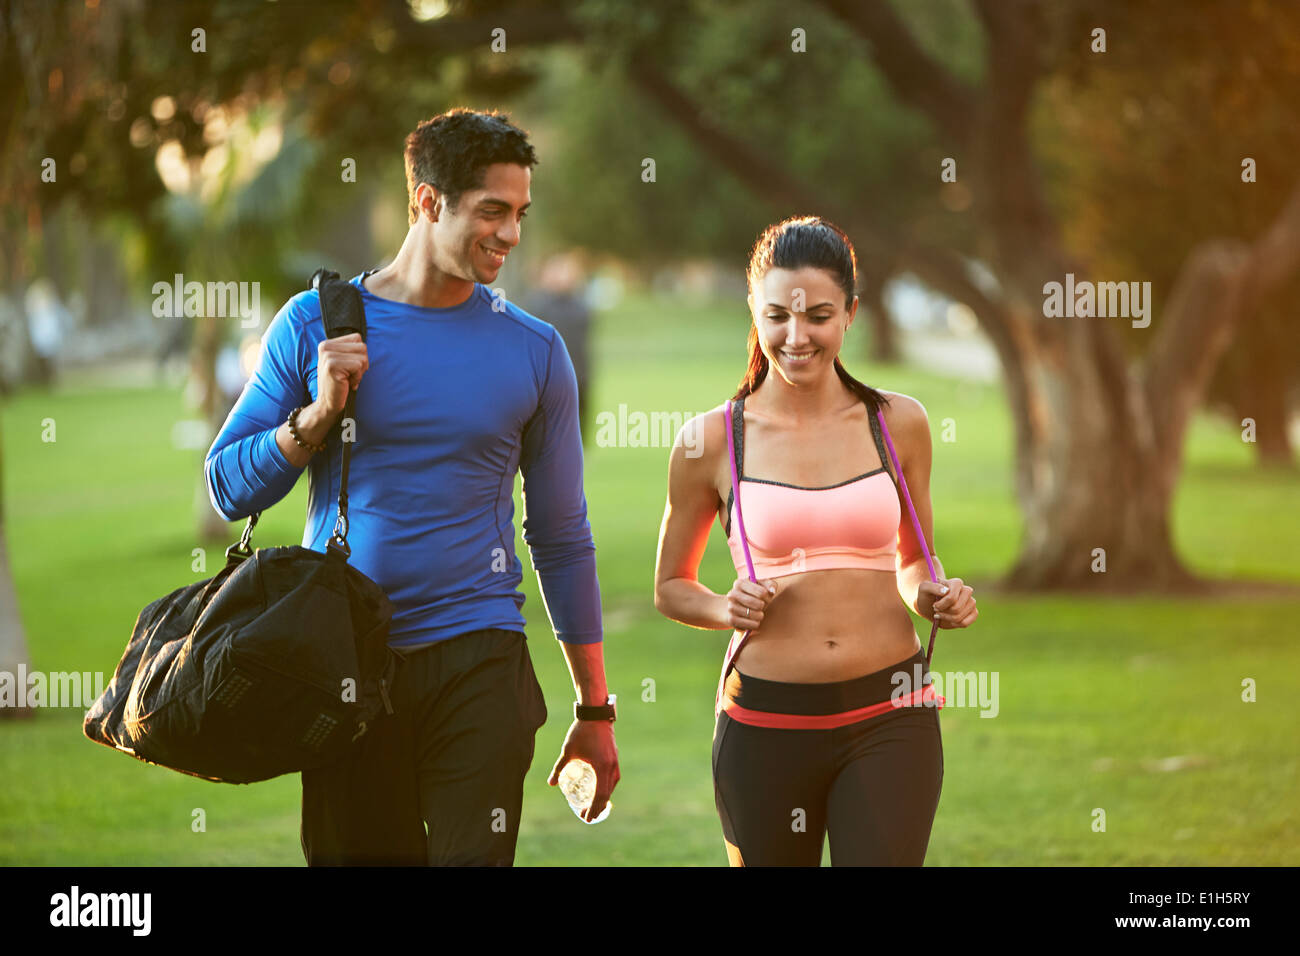 Man and woman wearing sports clothes walking through park - Stock Image